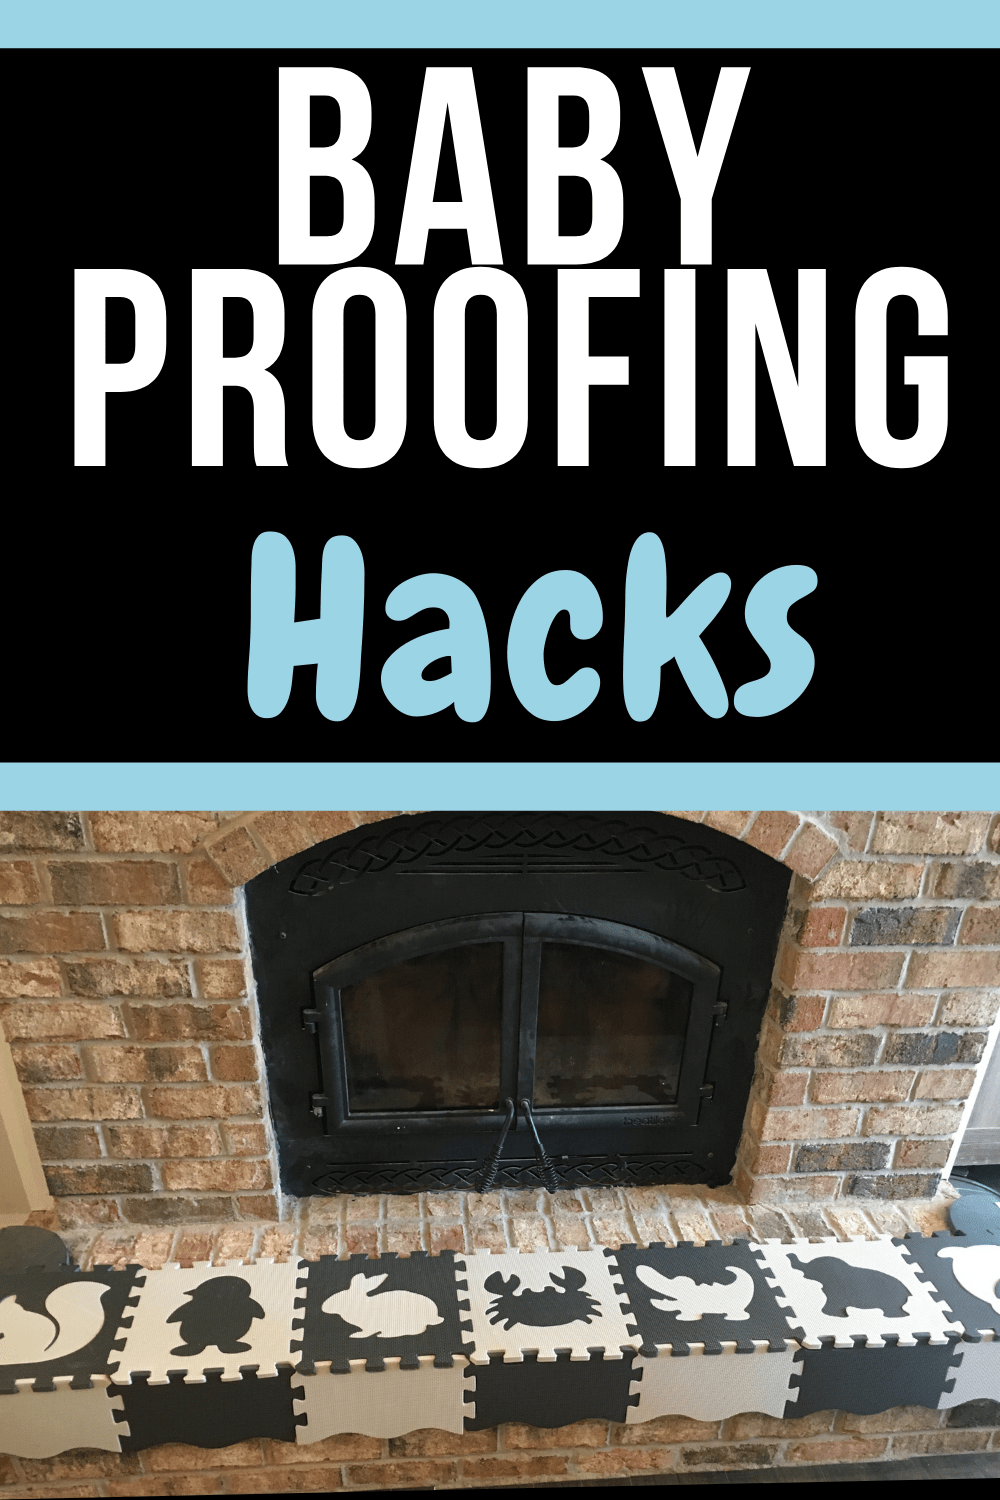 The Best Baby Proofing Products: Tips and Tricks to Keep Baby Safe! Including the Areas You Can't Skip Over! #baby #toddler #babyproof #babyproofing #childproof